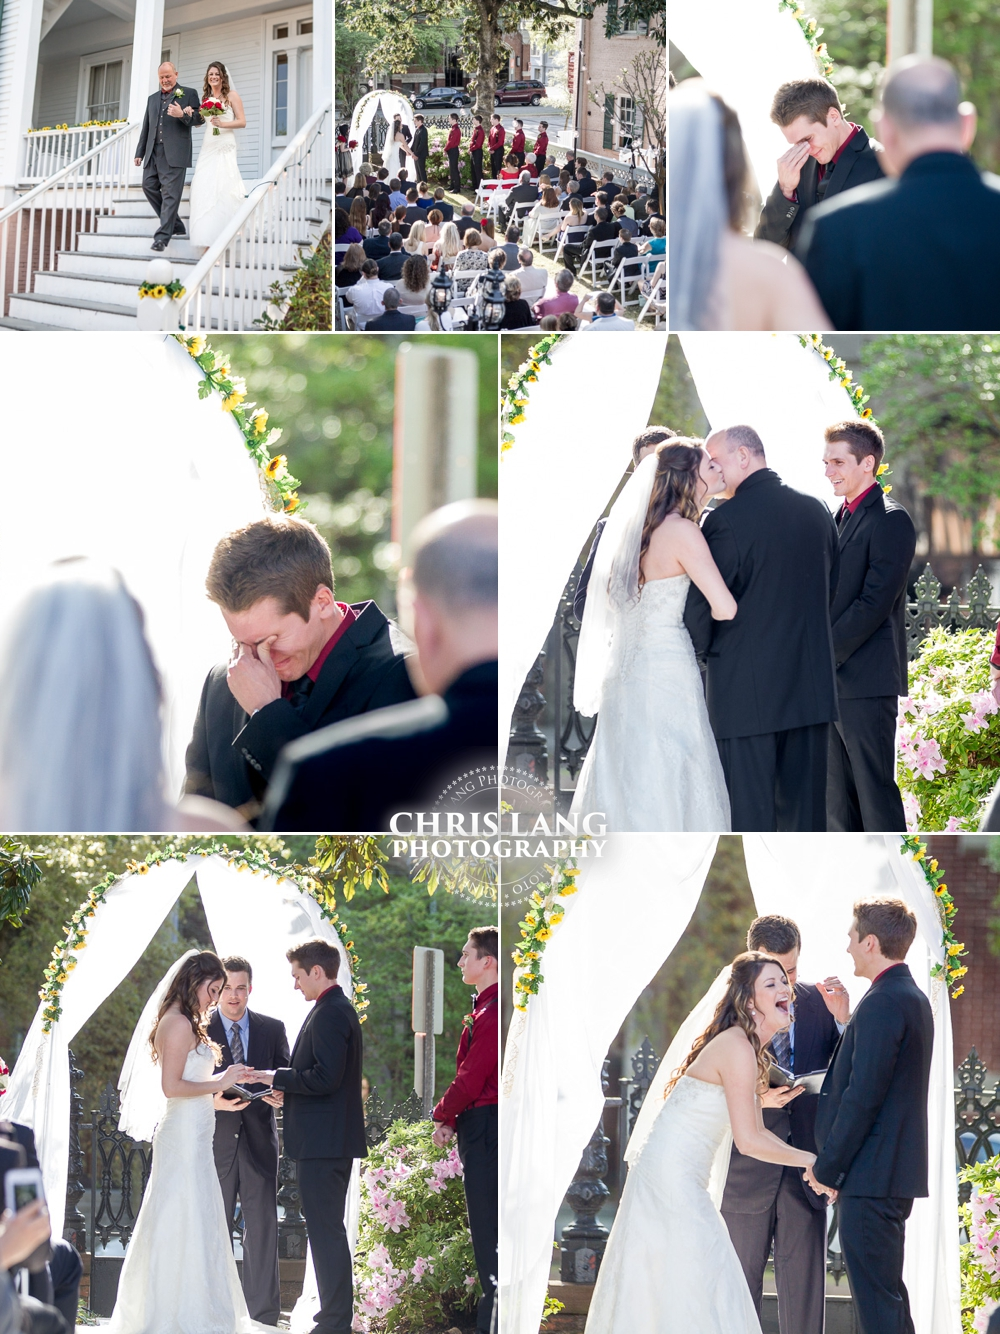 Pictures of Wedding Ceremony at Bellamy Mansion - Wilmington NC Wedding Photographers